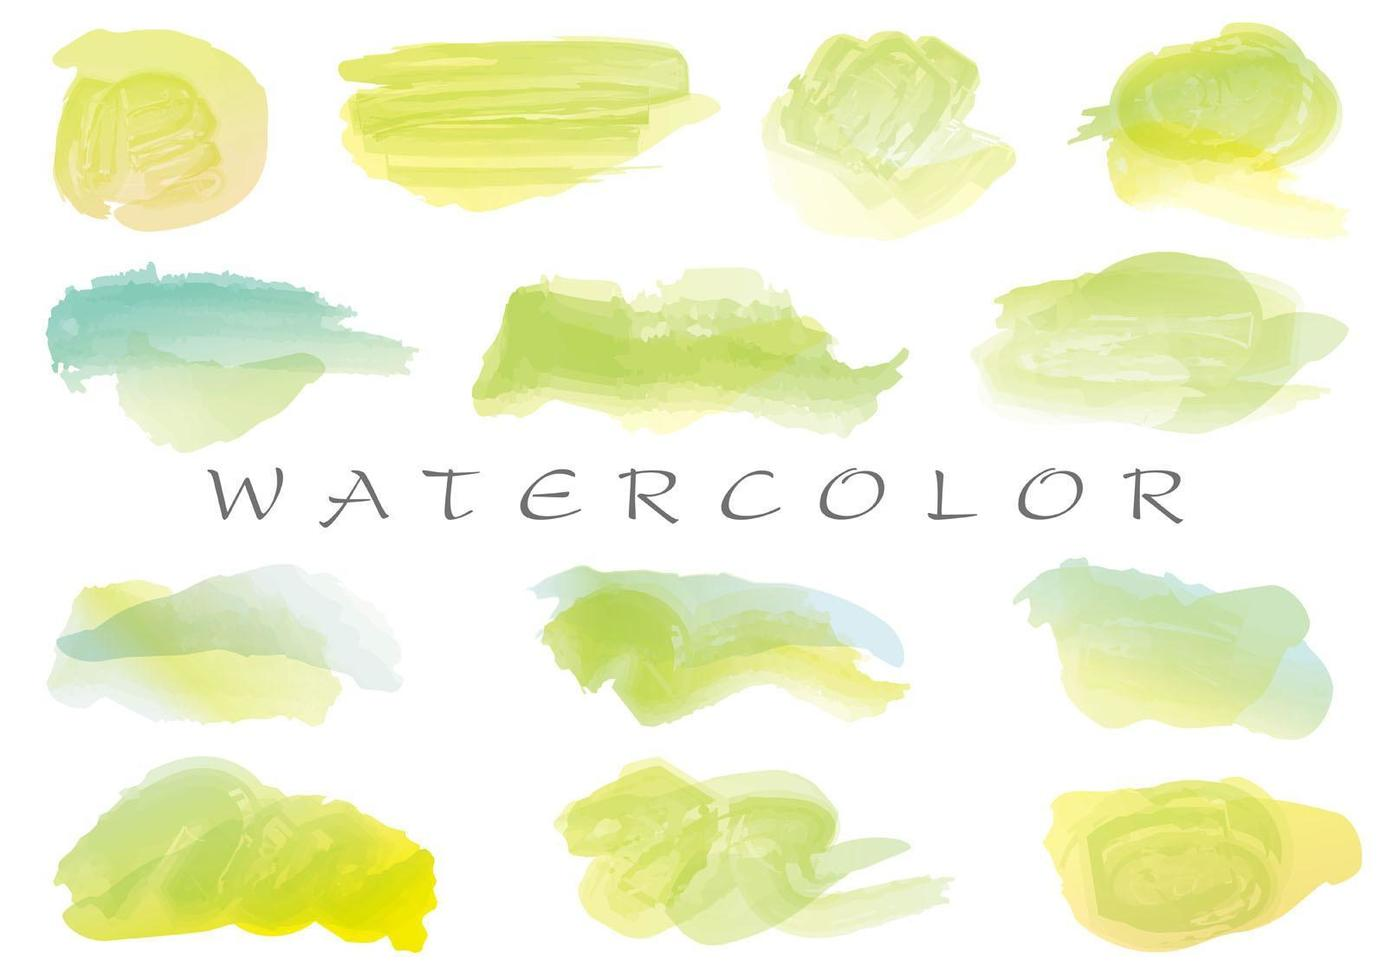 Watercolor brush stroke icon collection vector